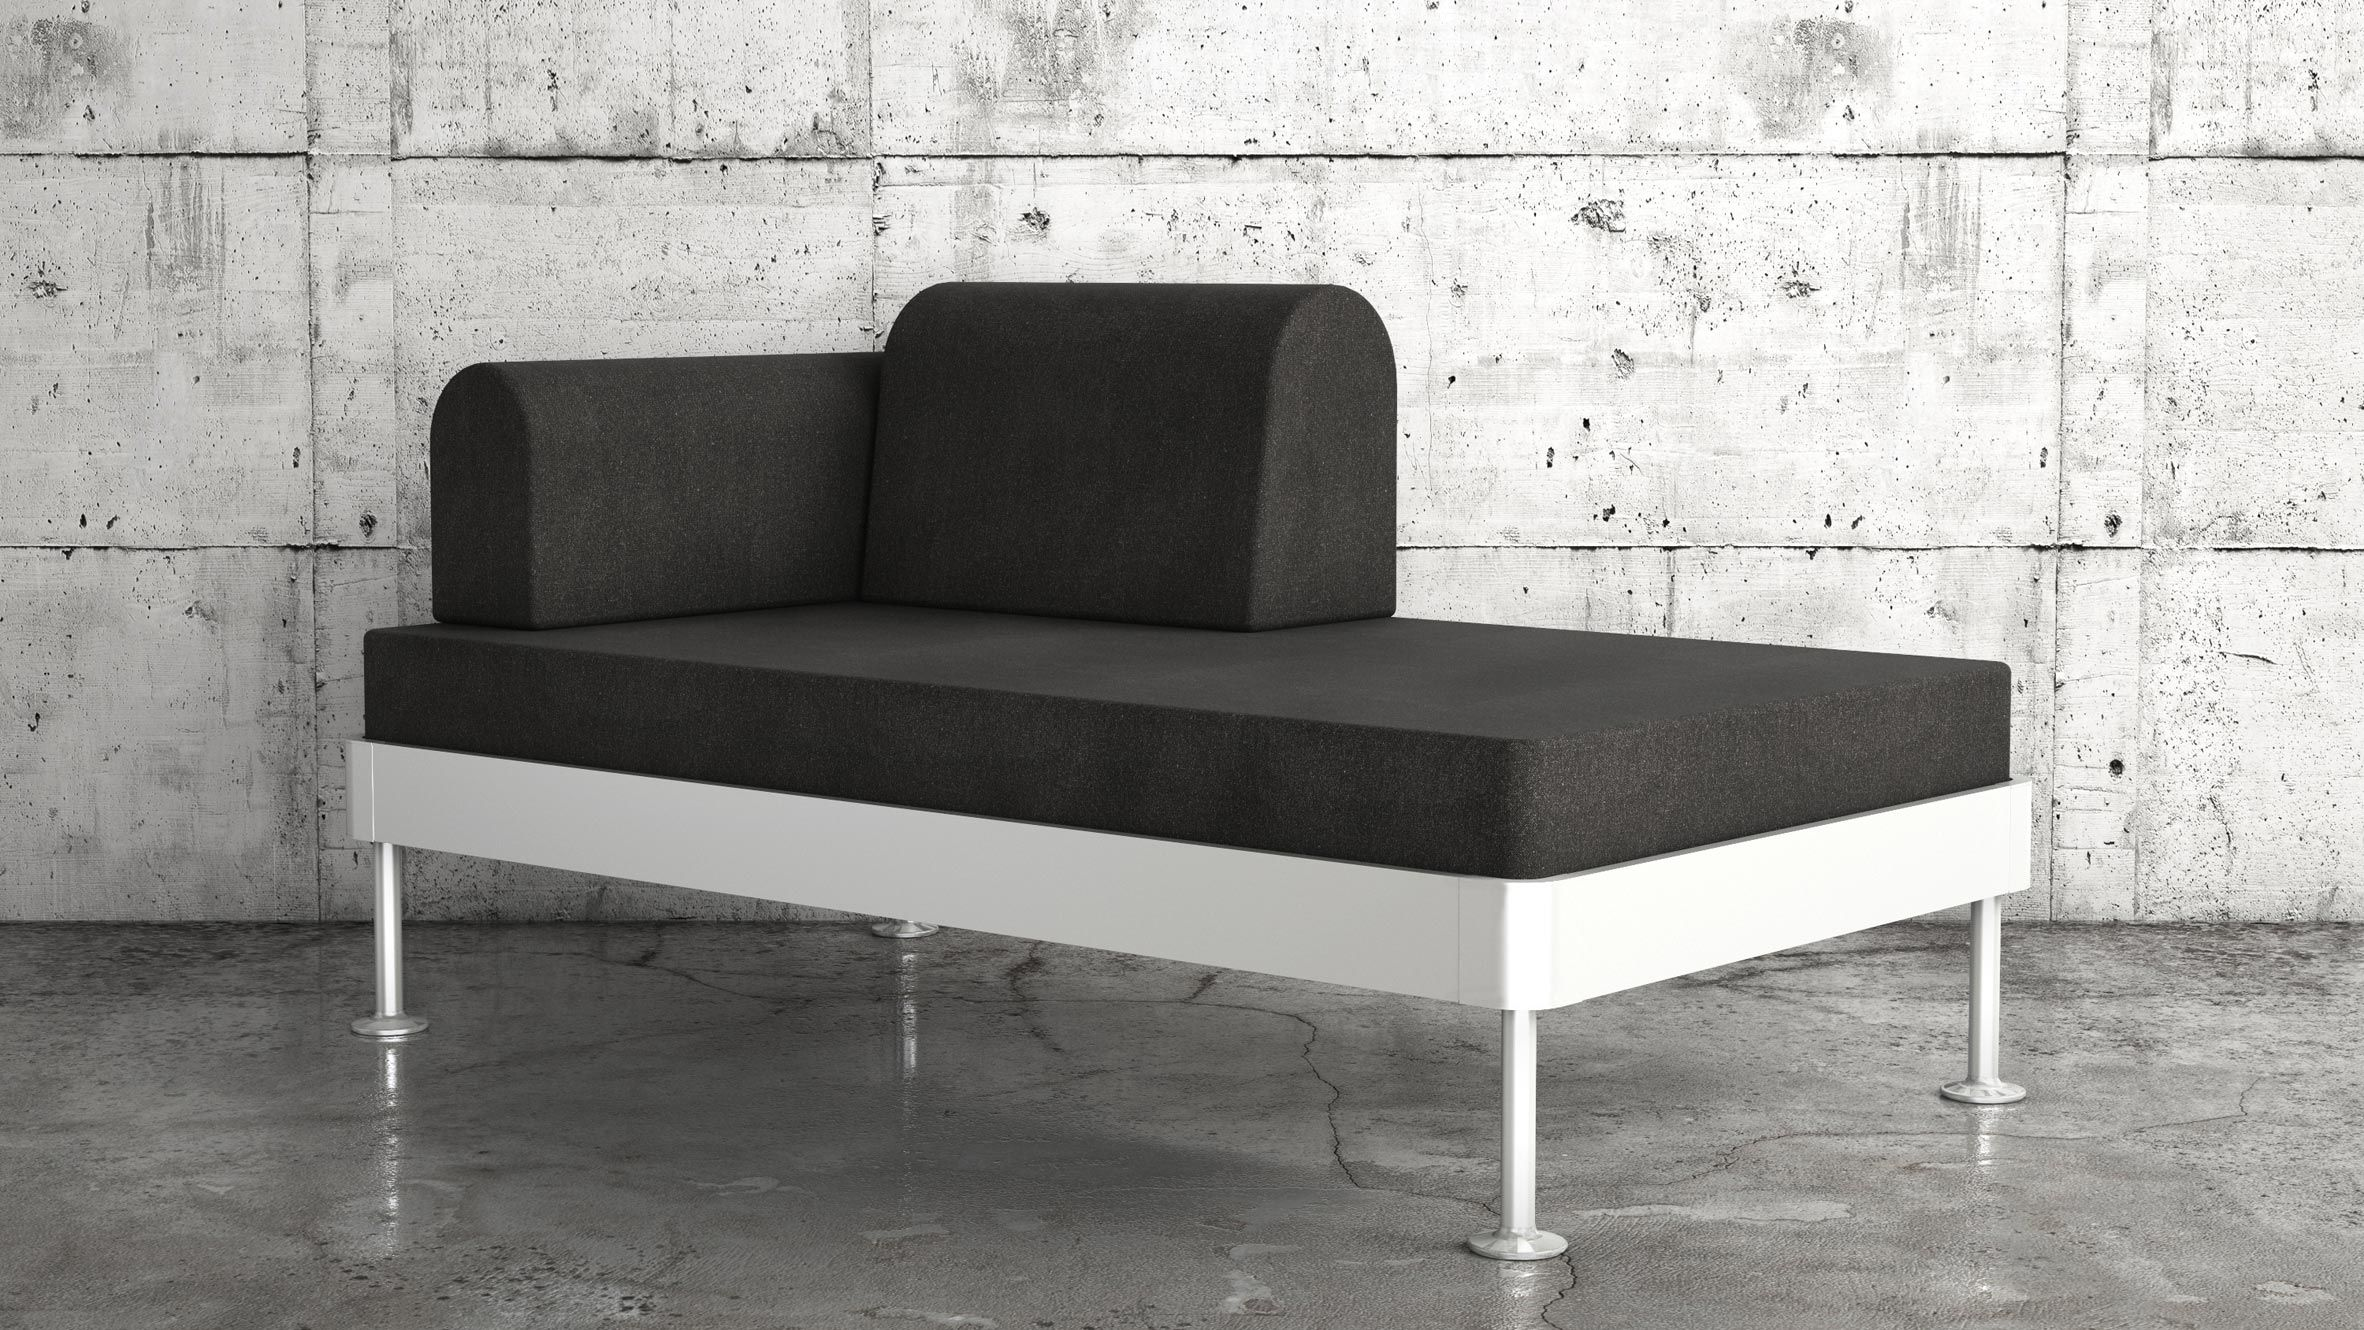 Sofa Covers IKEA reveals Tom Dixon us Delaktig modular bed and sofa